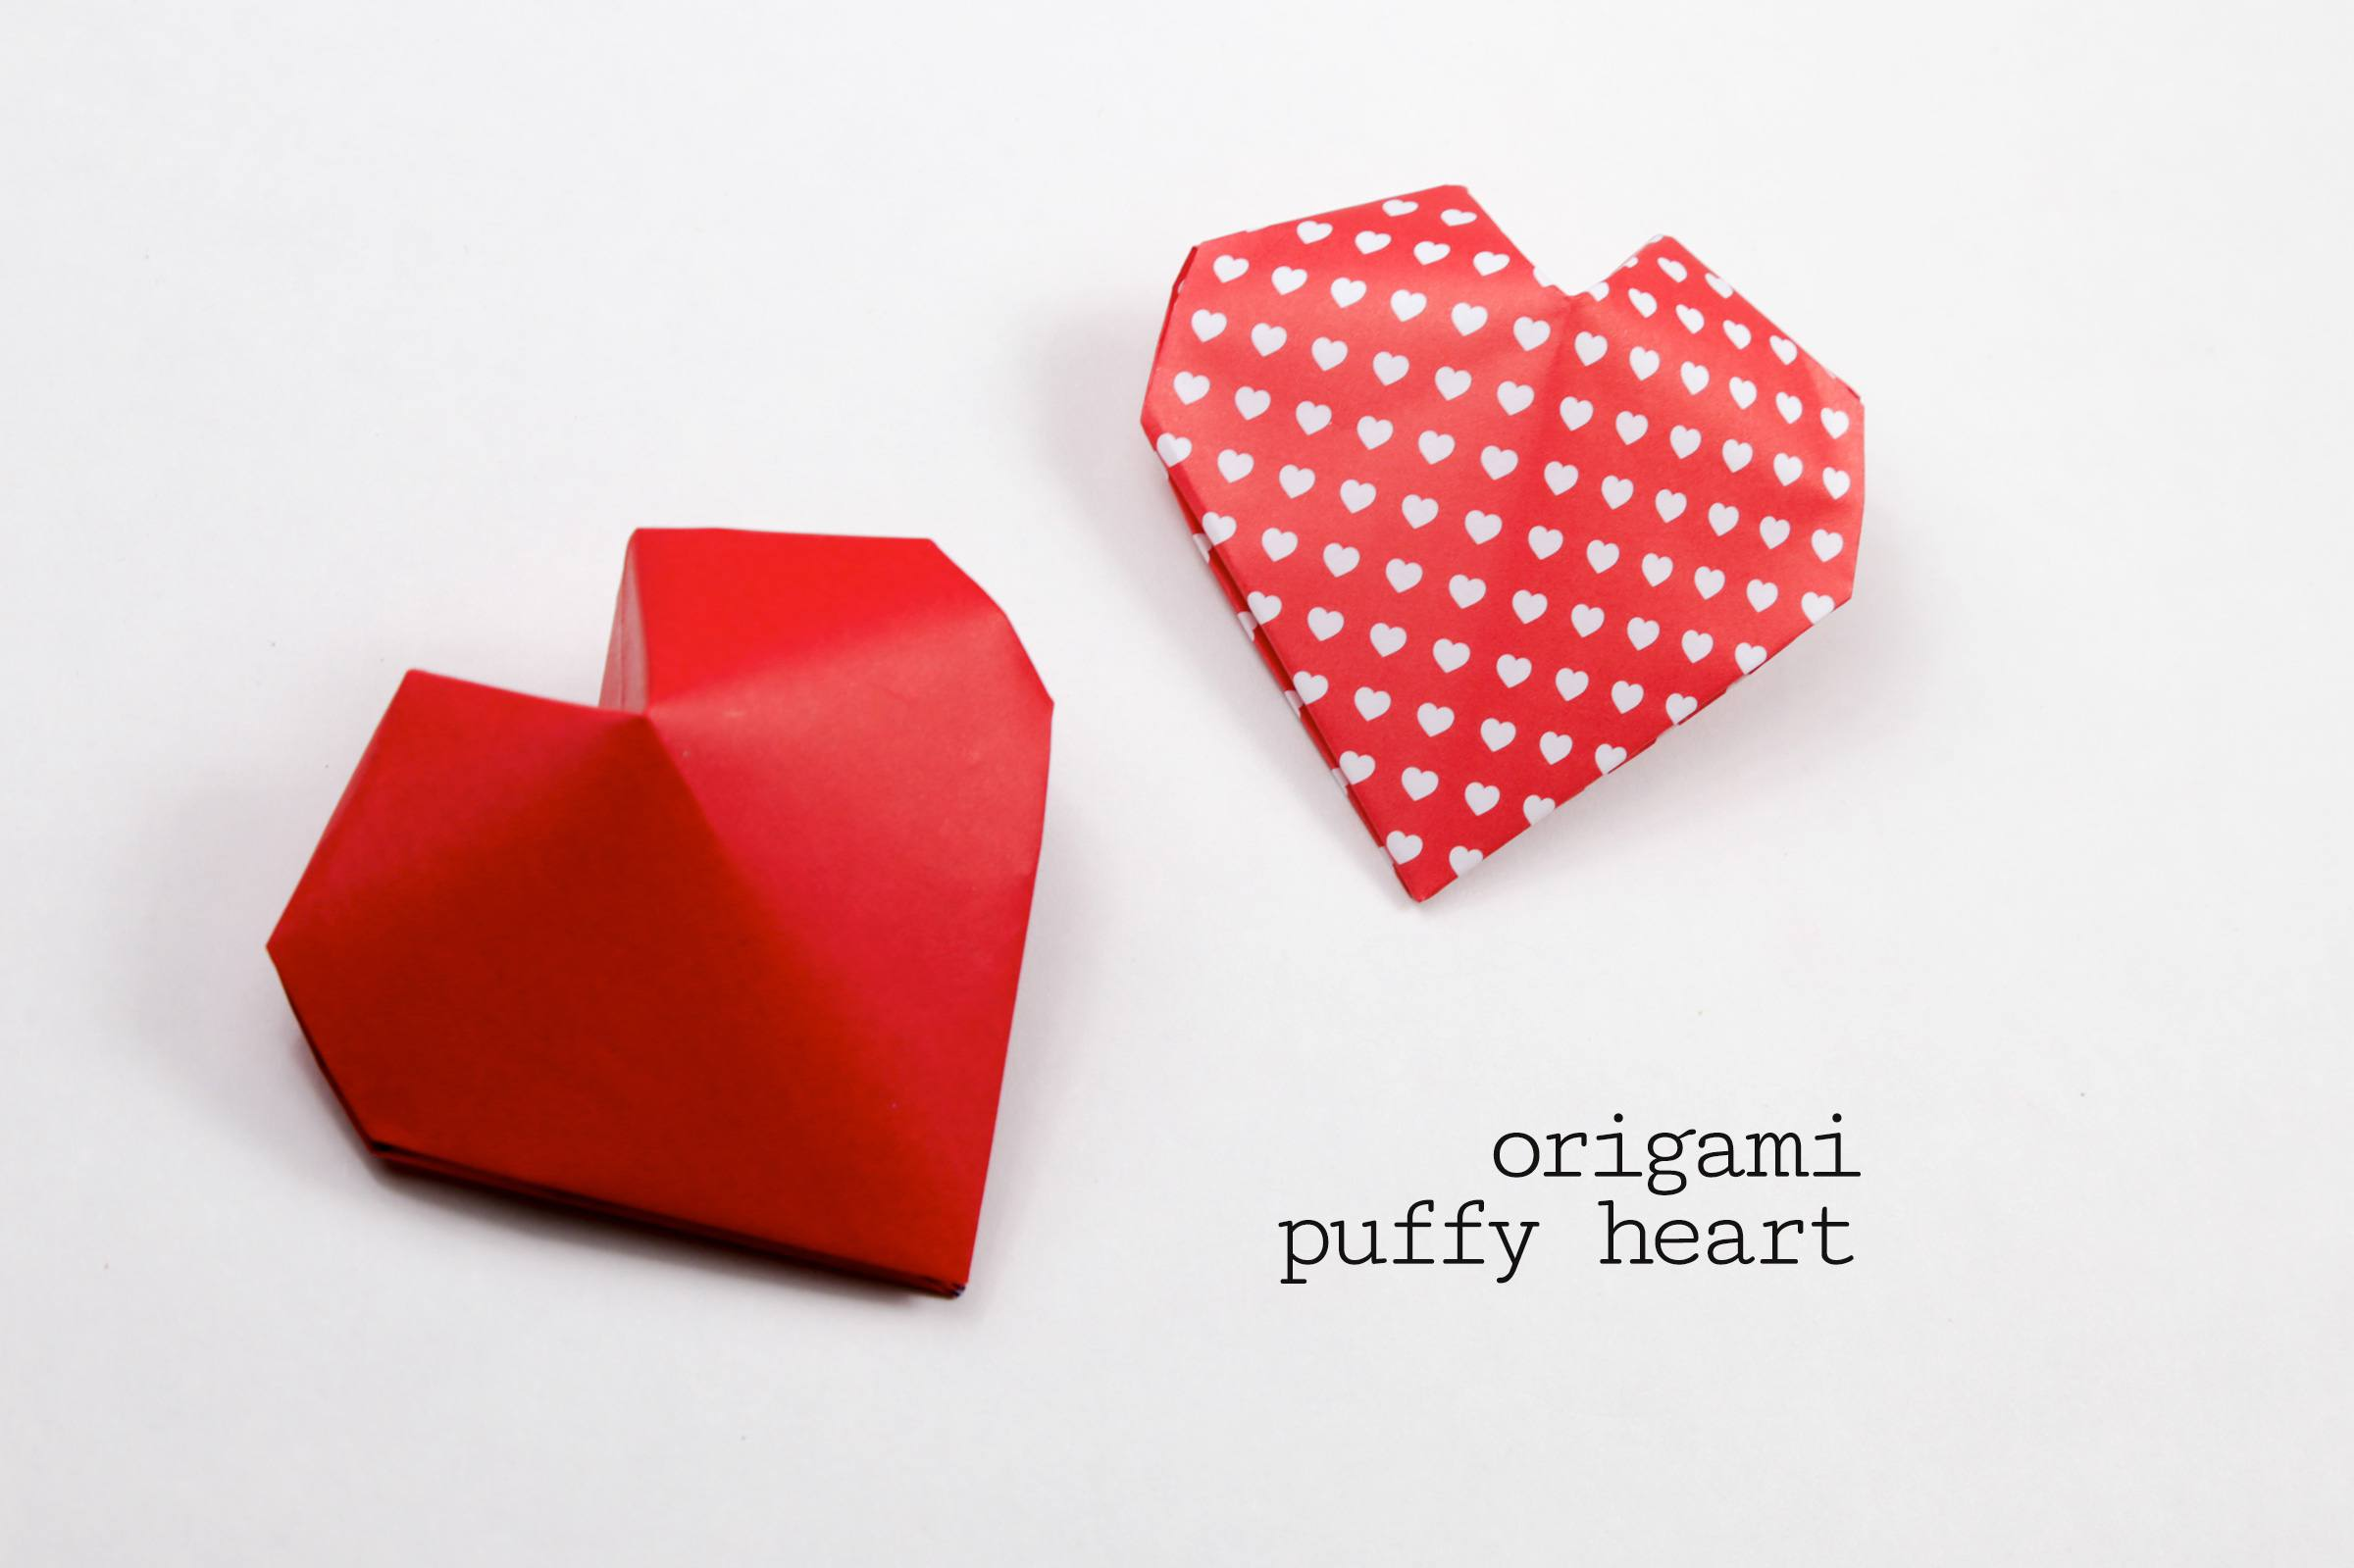 Origami Puffy Heart Instructions